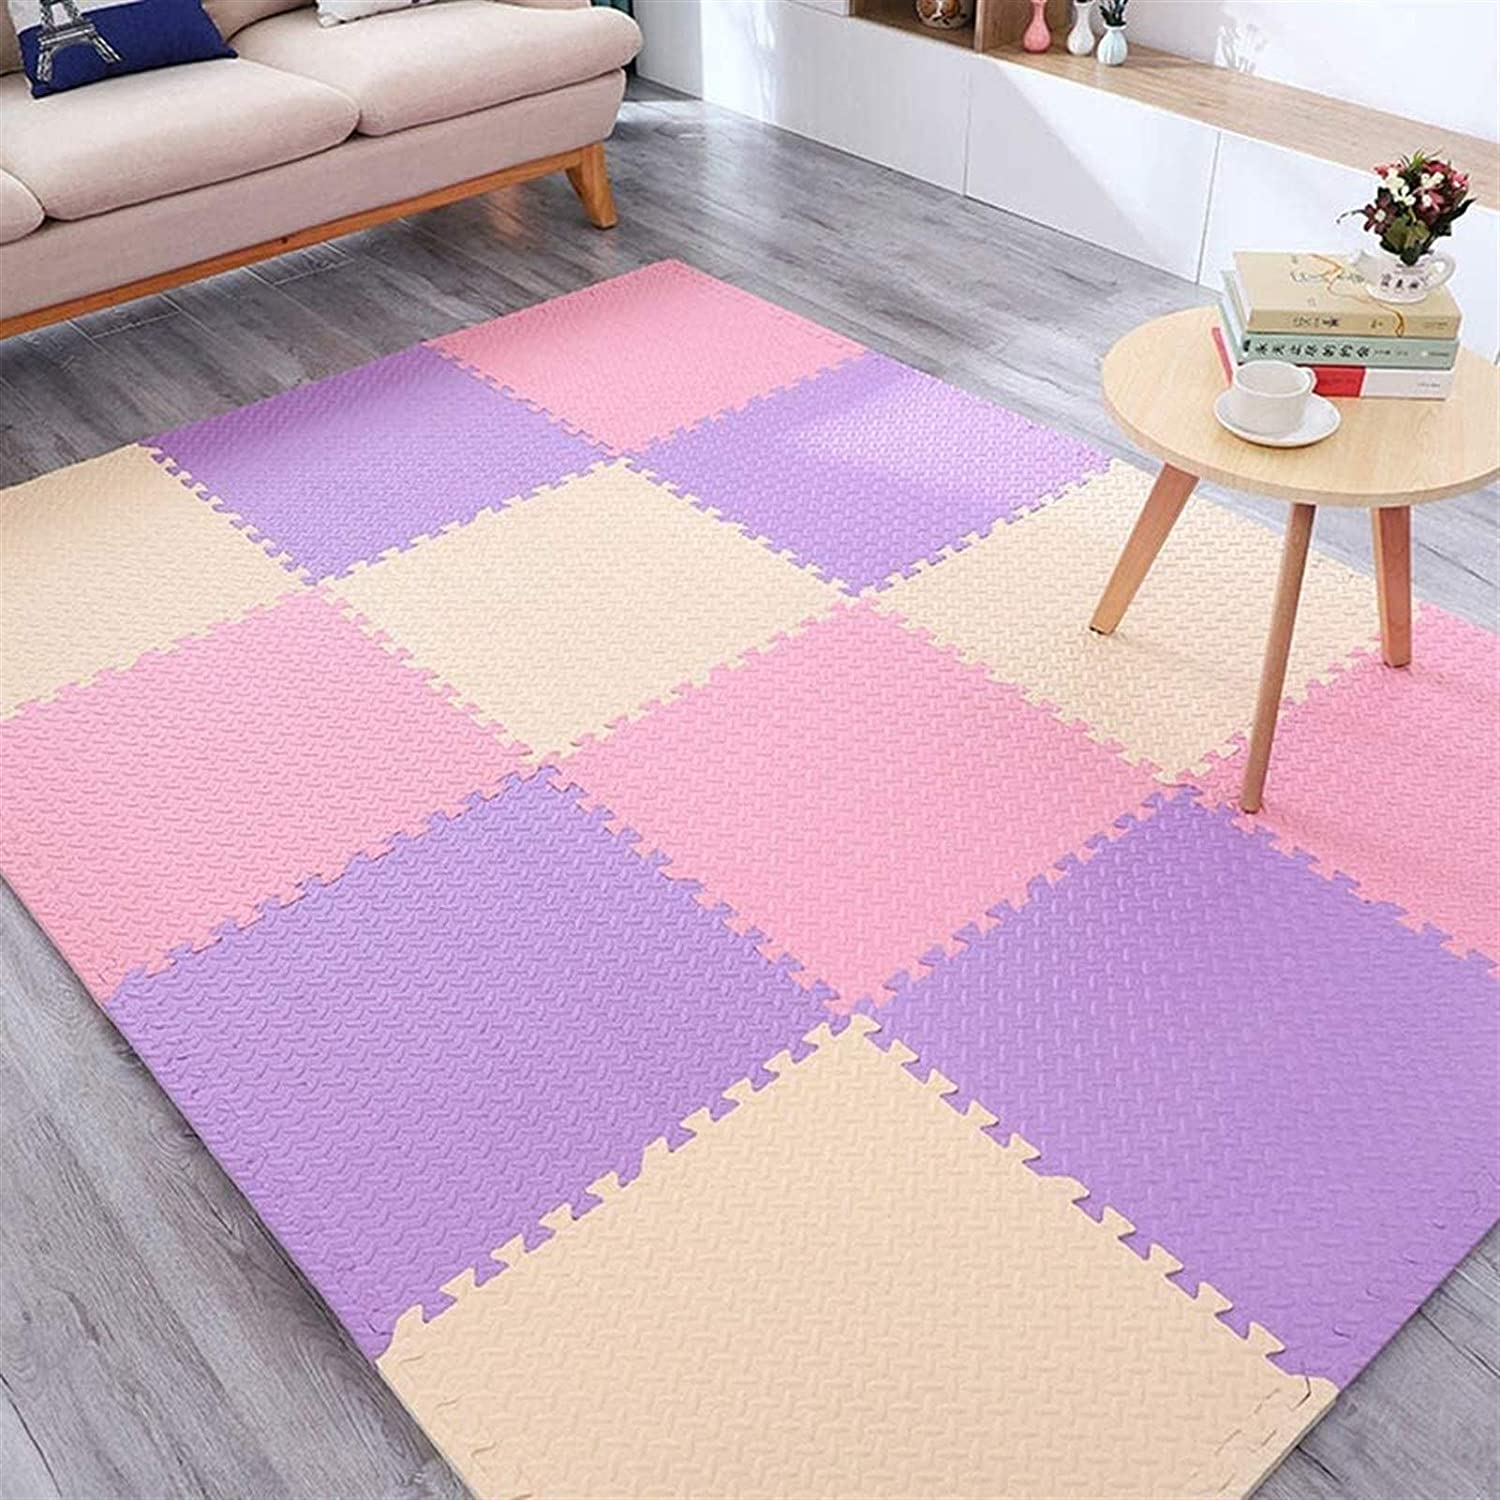 Puzzle Play Mats Versatile Rare Foam And Durable Offering Tough price